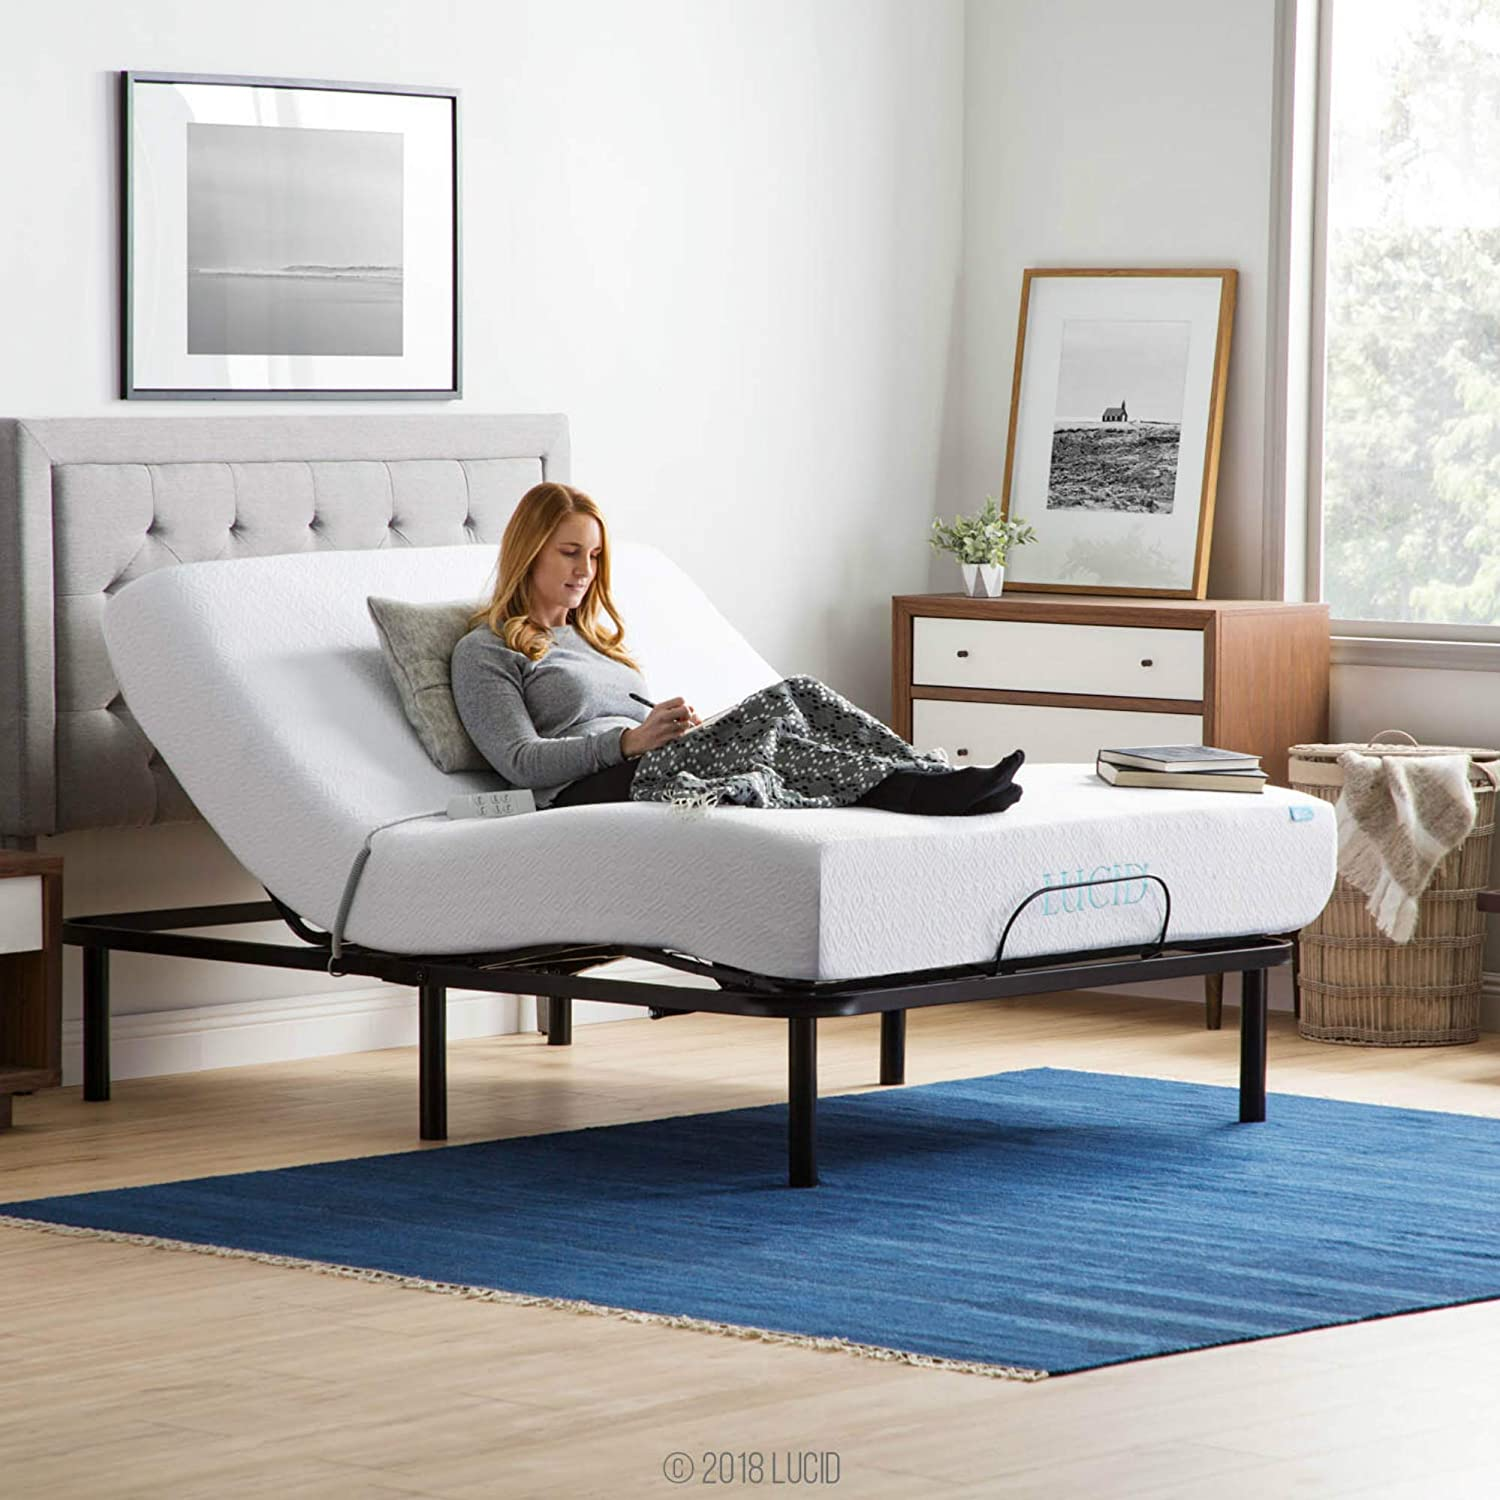 LUCID L100 Adjustable Bed Base Steel Frame - 5 Minute Assembly - Head and Foot Incline - Wired Remote Control - Queen LUL100QQAB